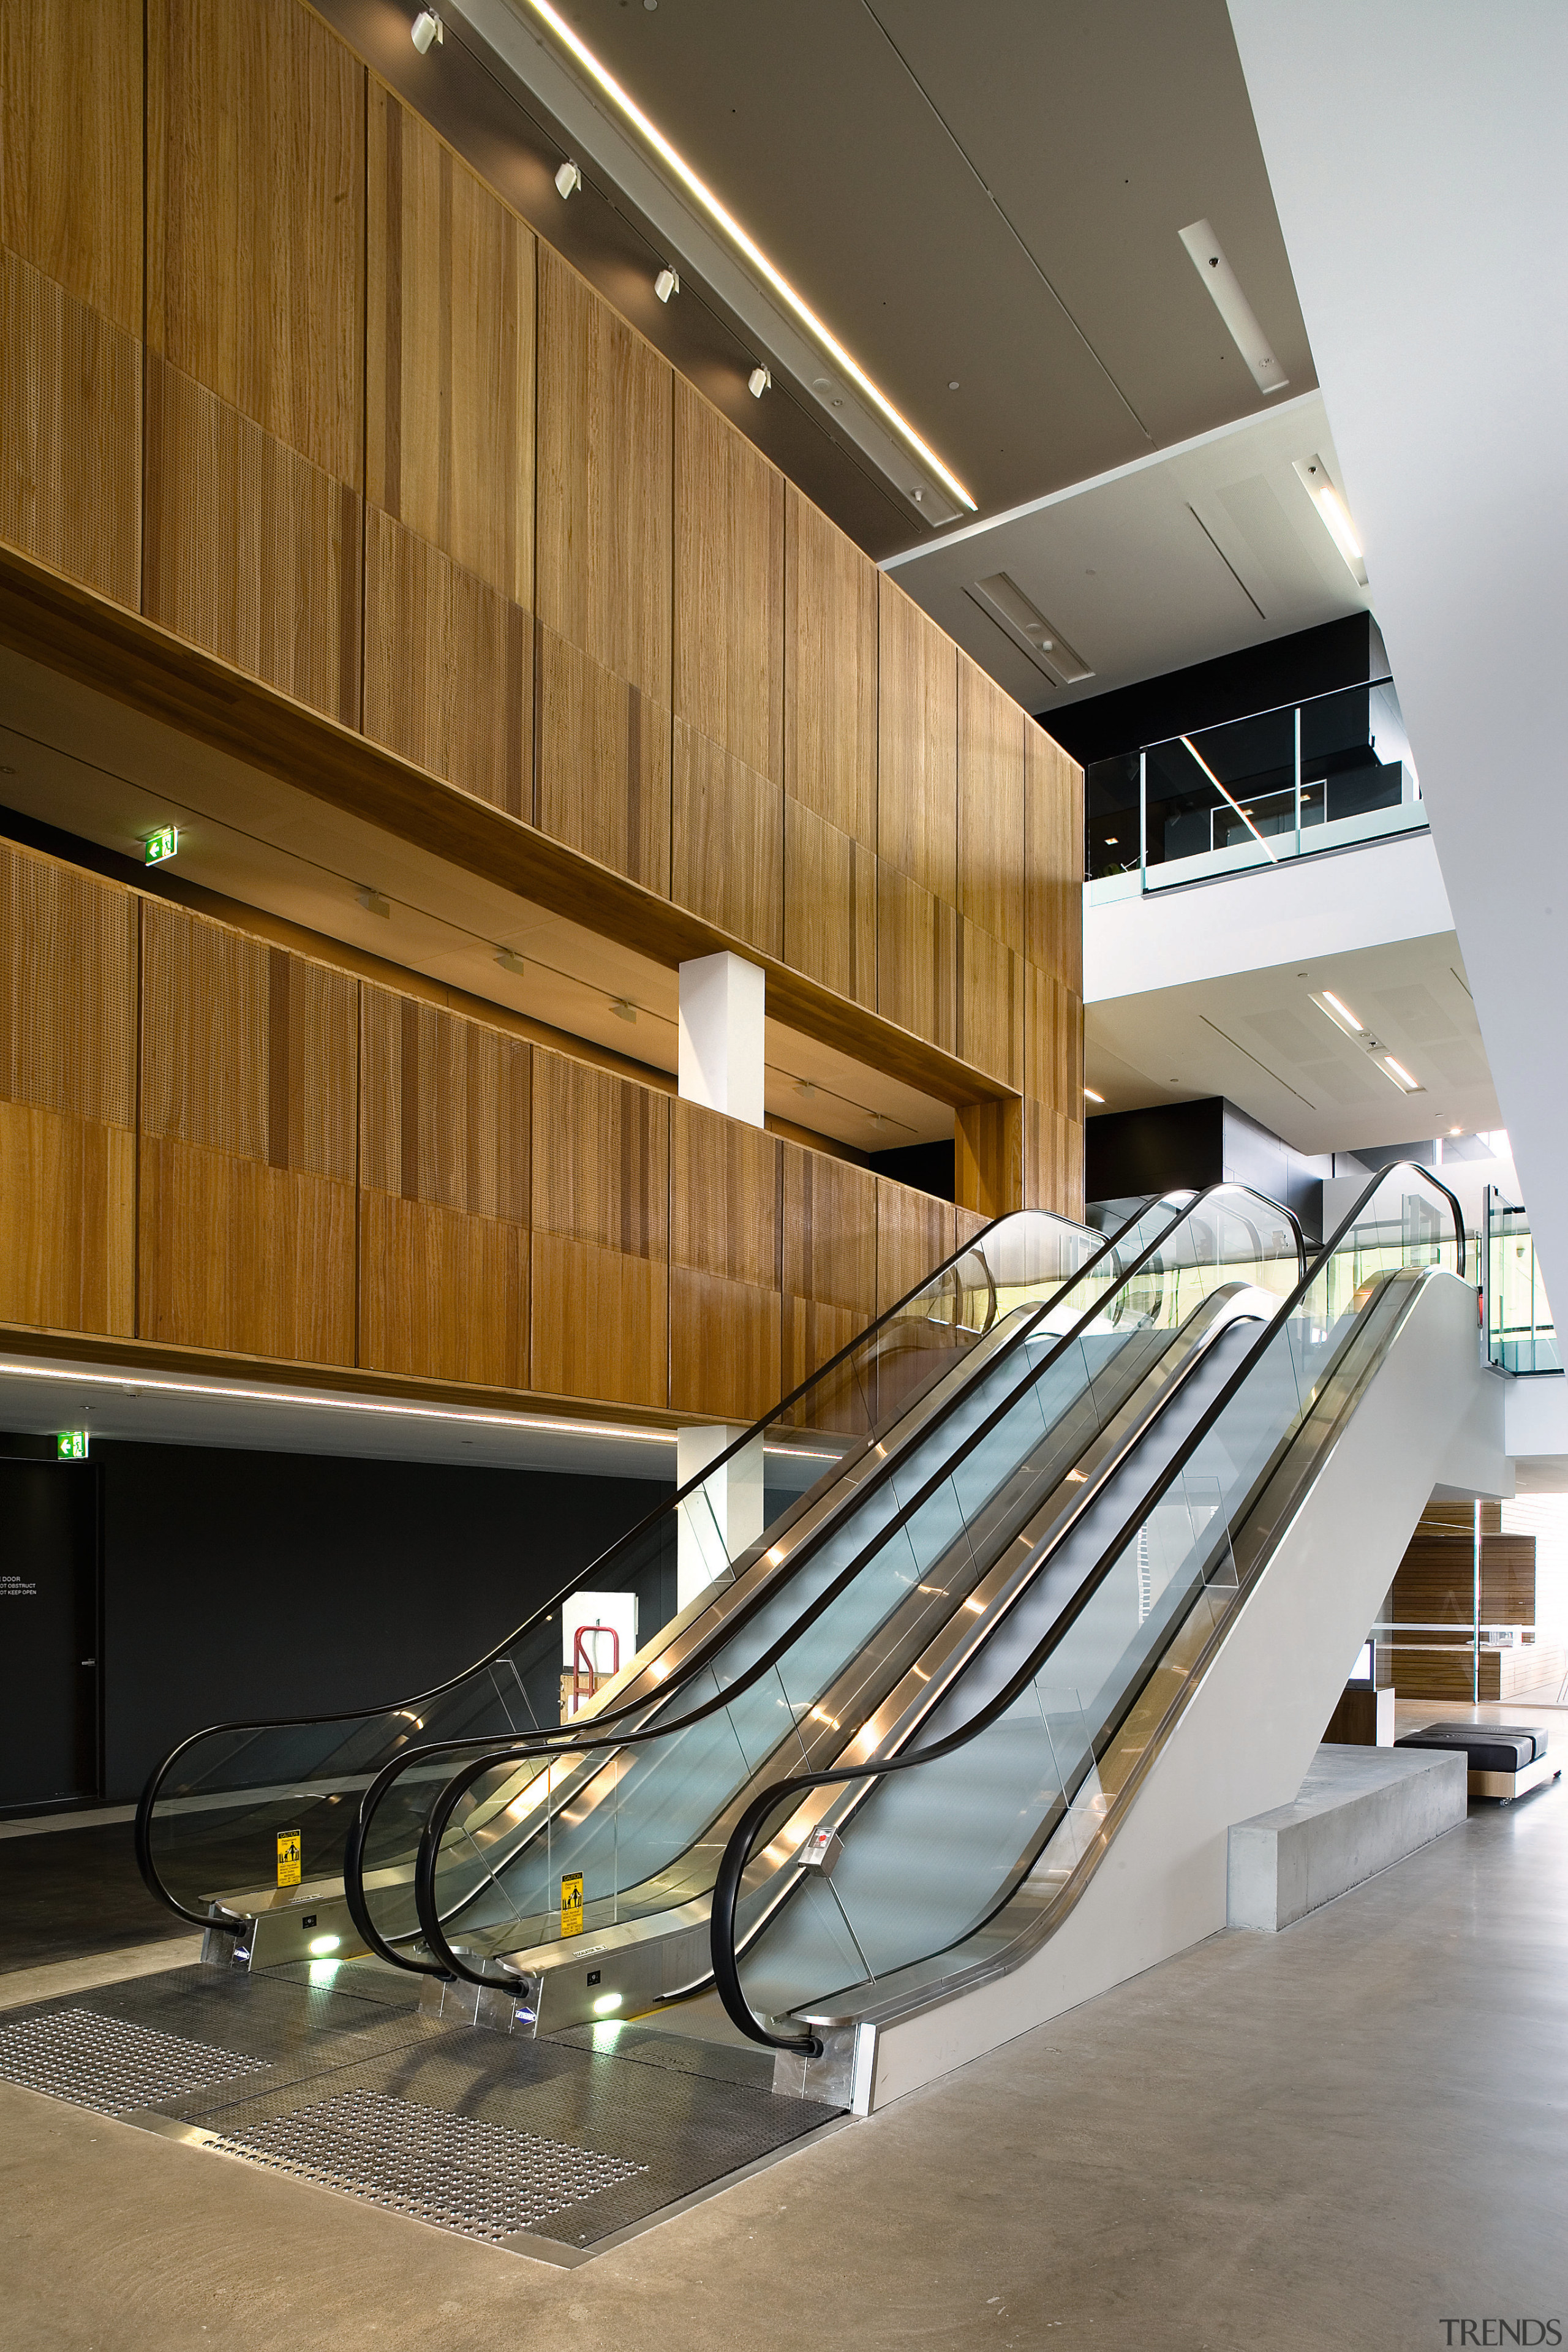 A view of some esculators from Liftronic. - architecture, daylighting, floor, handrail, interior design, stairs, wood, brown, gray